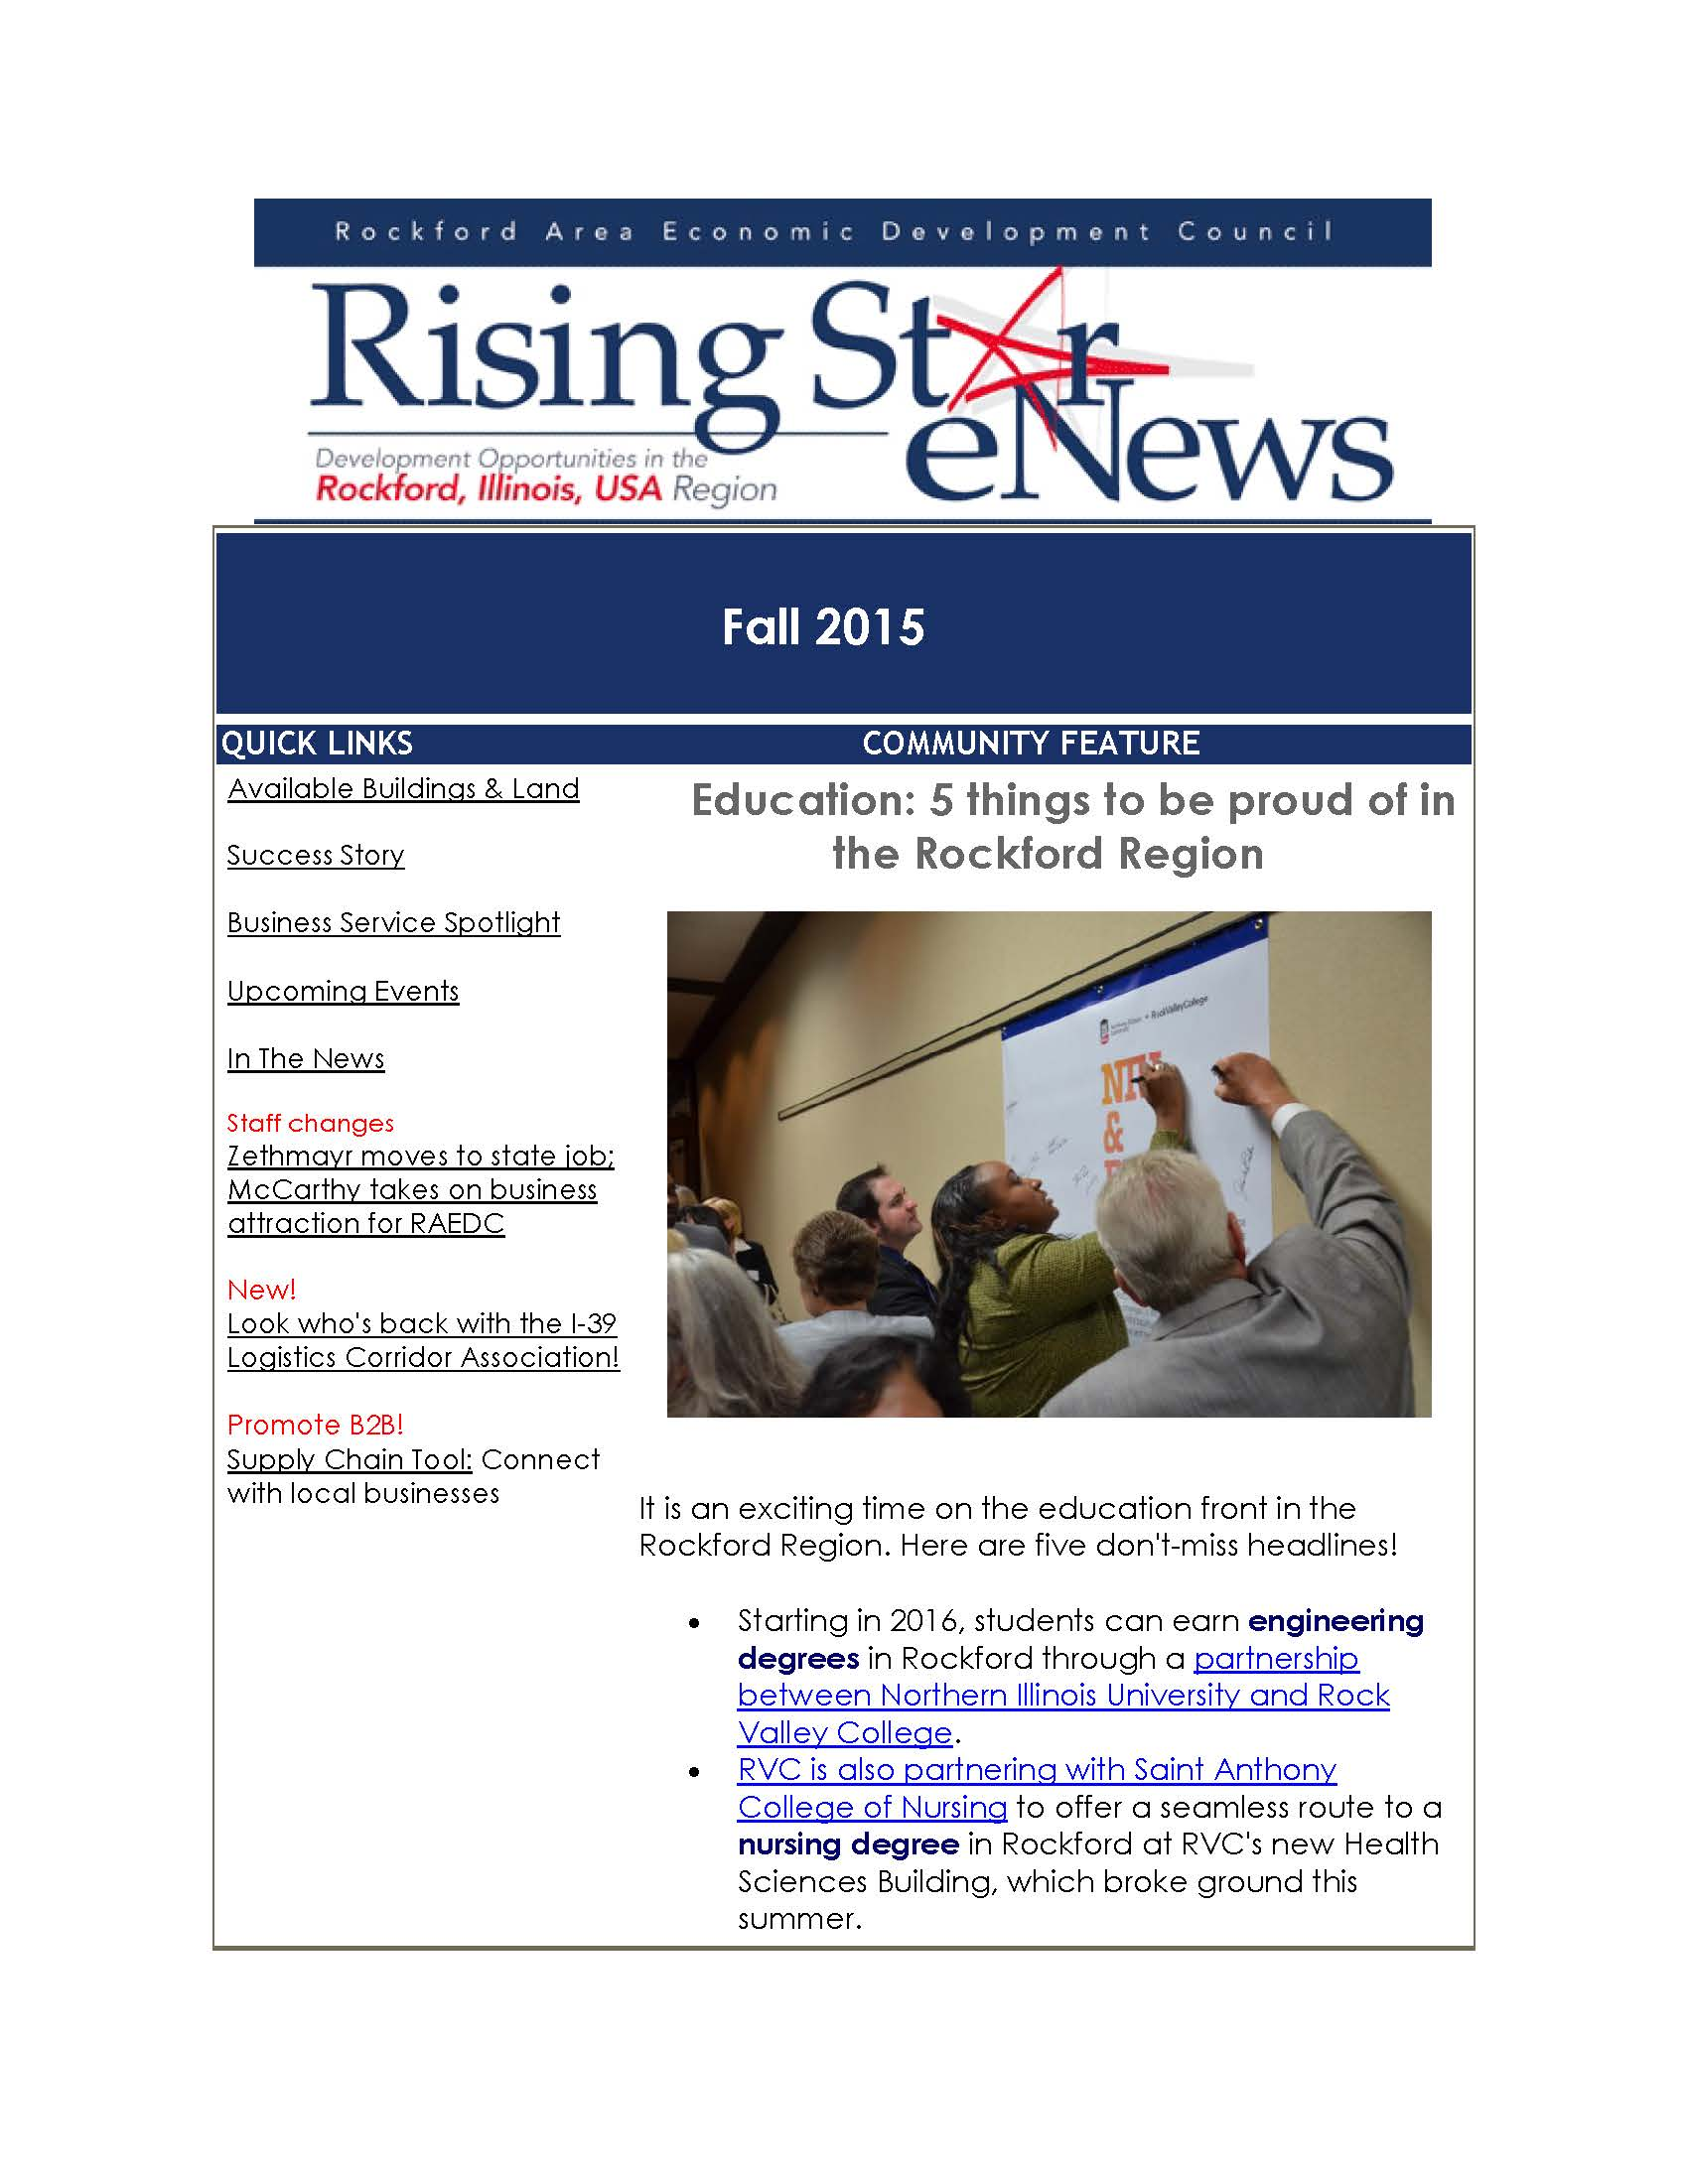 Rising Star Fall 2015 Newsletter focuses on real estate development, plus 5 exciting education headlines